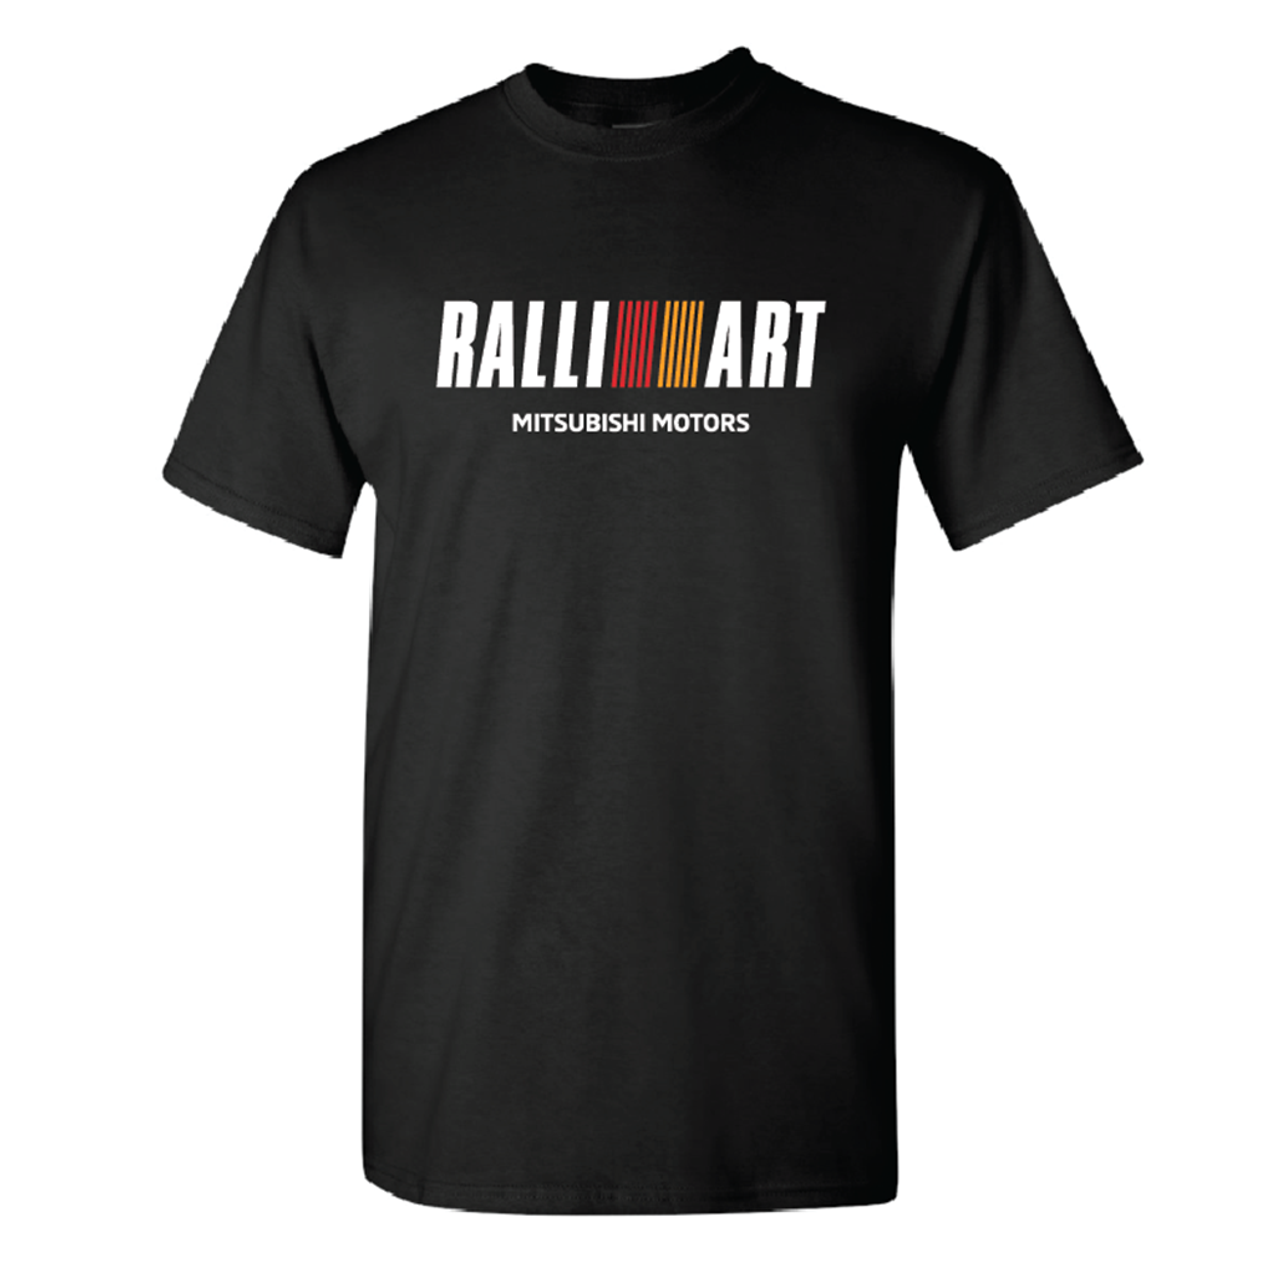 Ralliart Fan Favorite T-Shirt